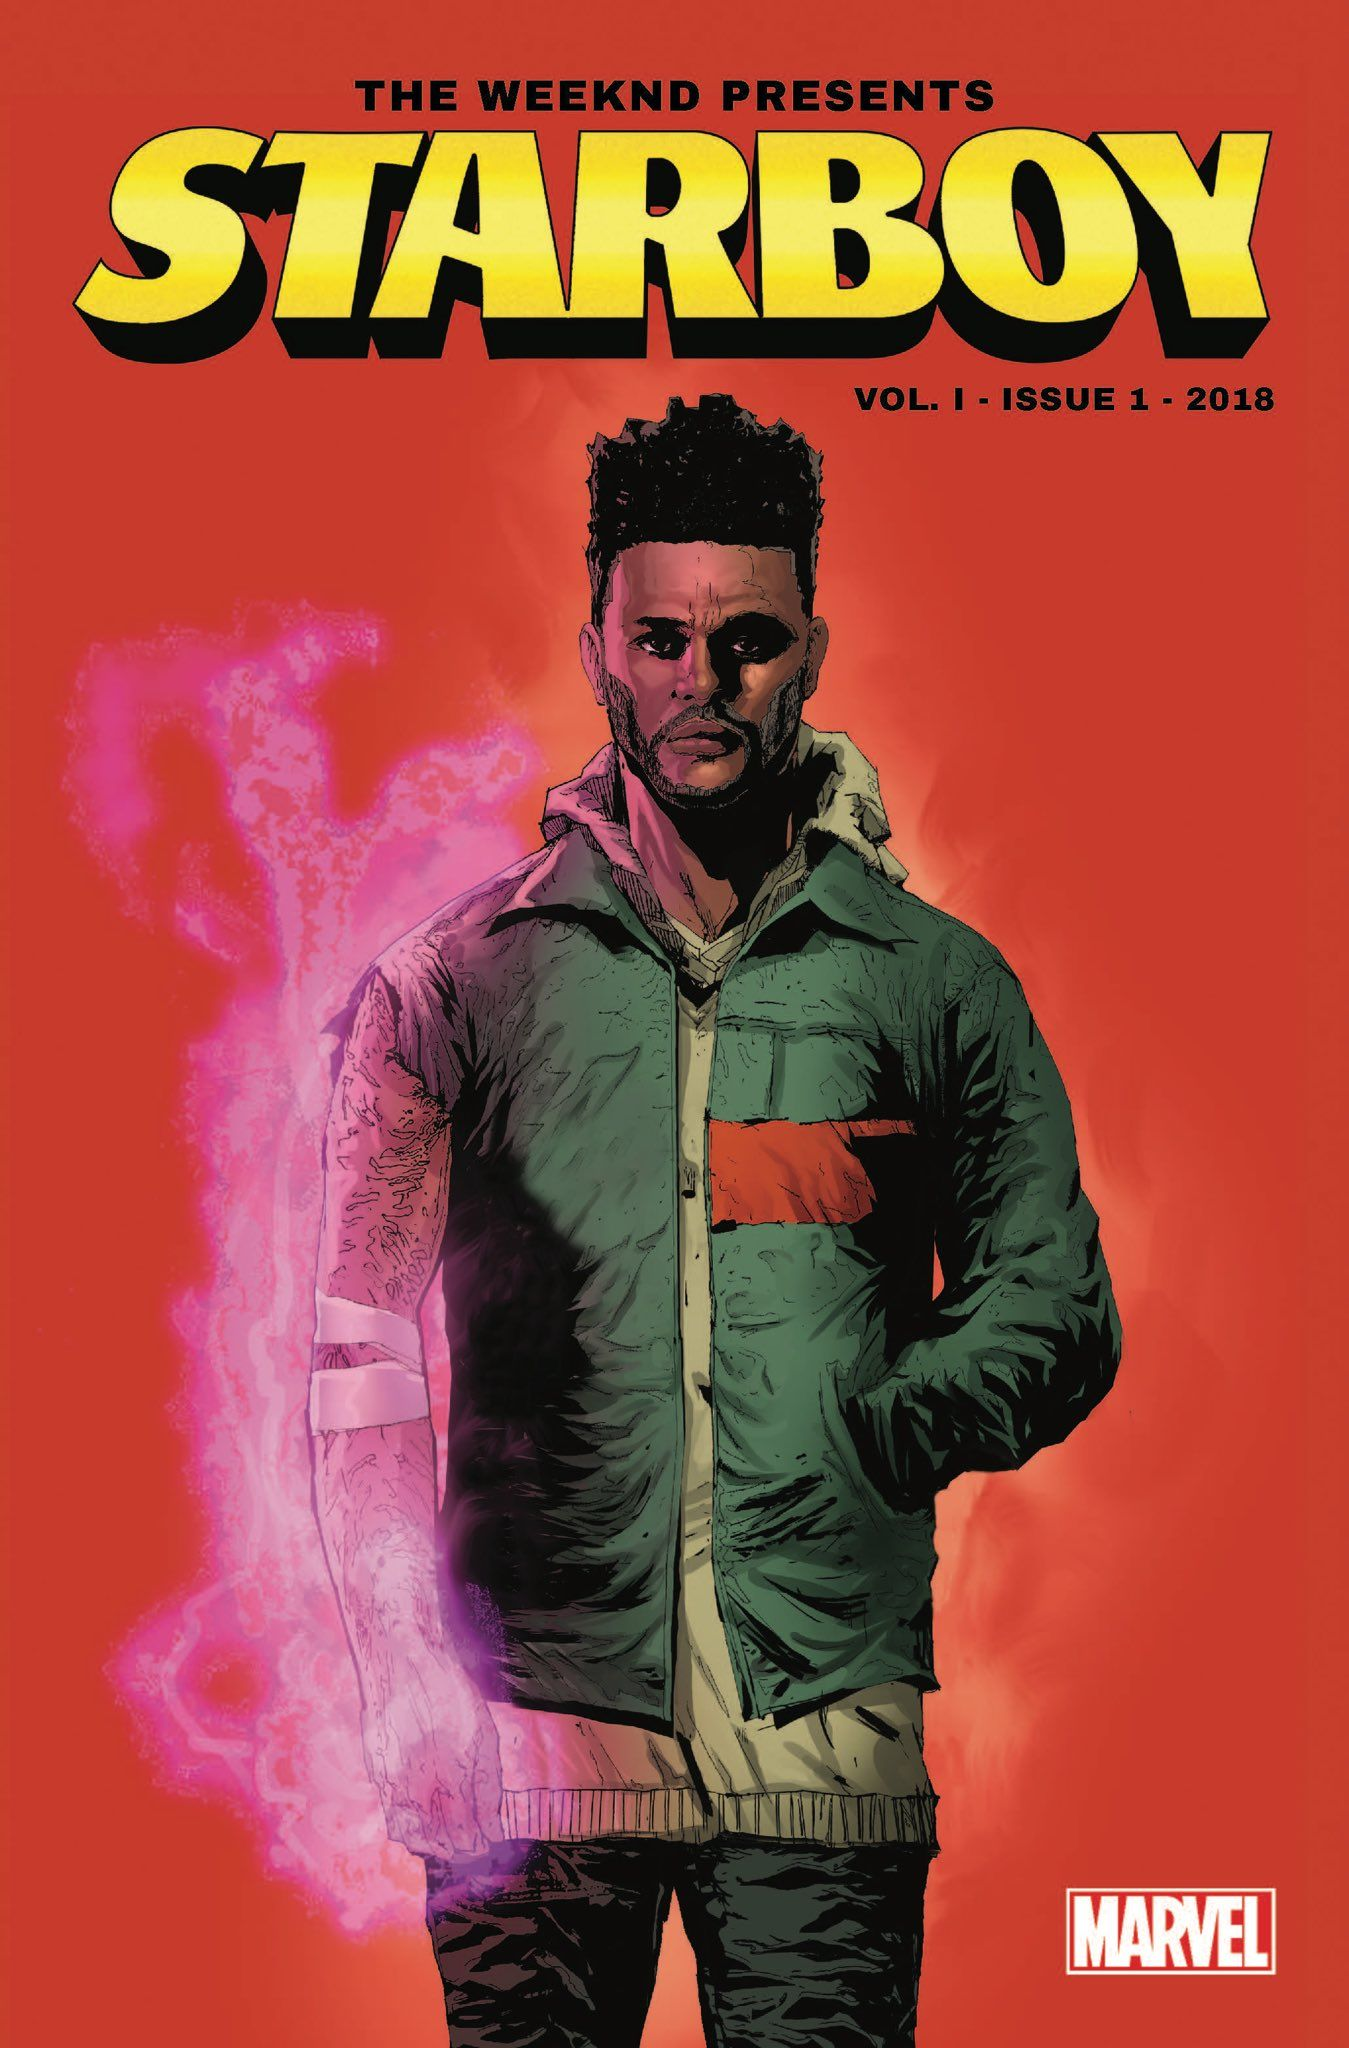 The Weeknd And Marvel Announce Starboy Comic Book